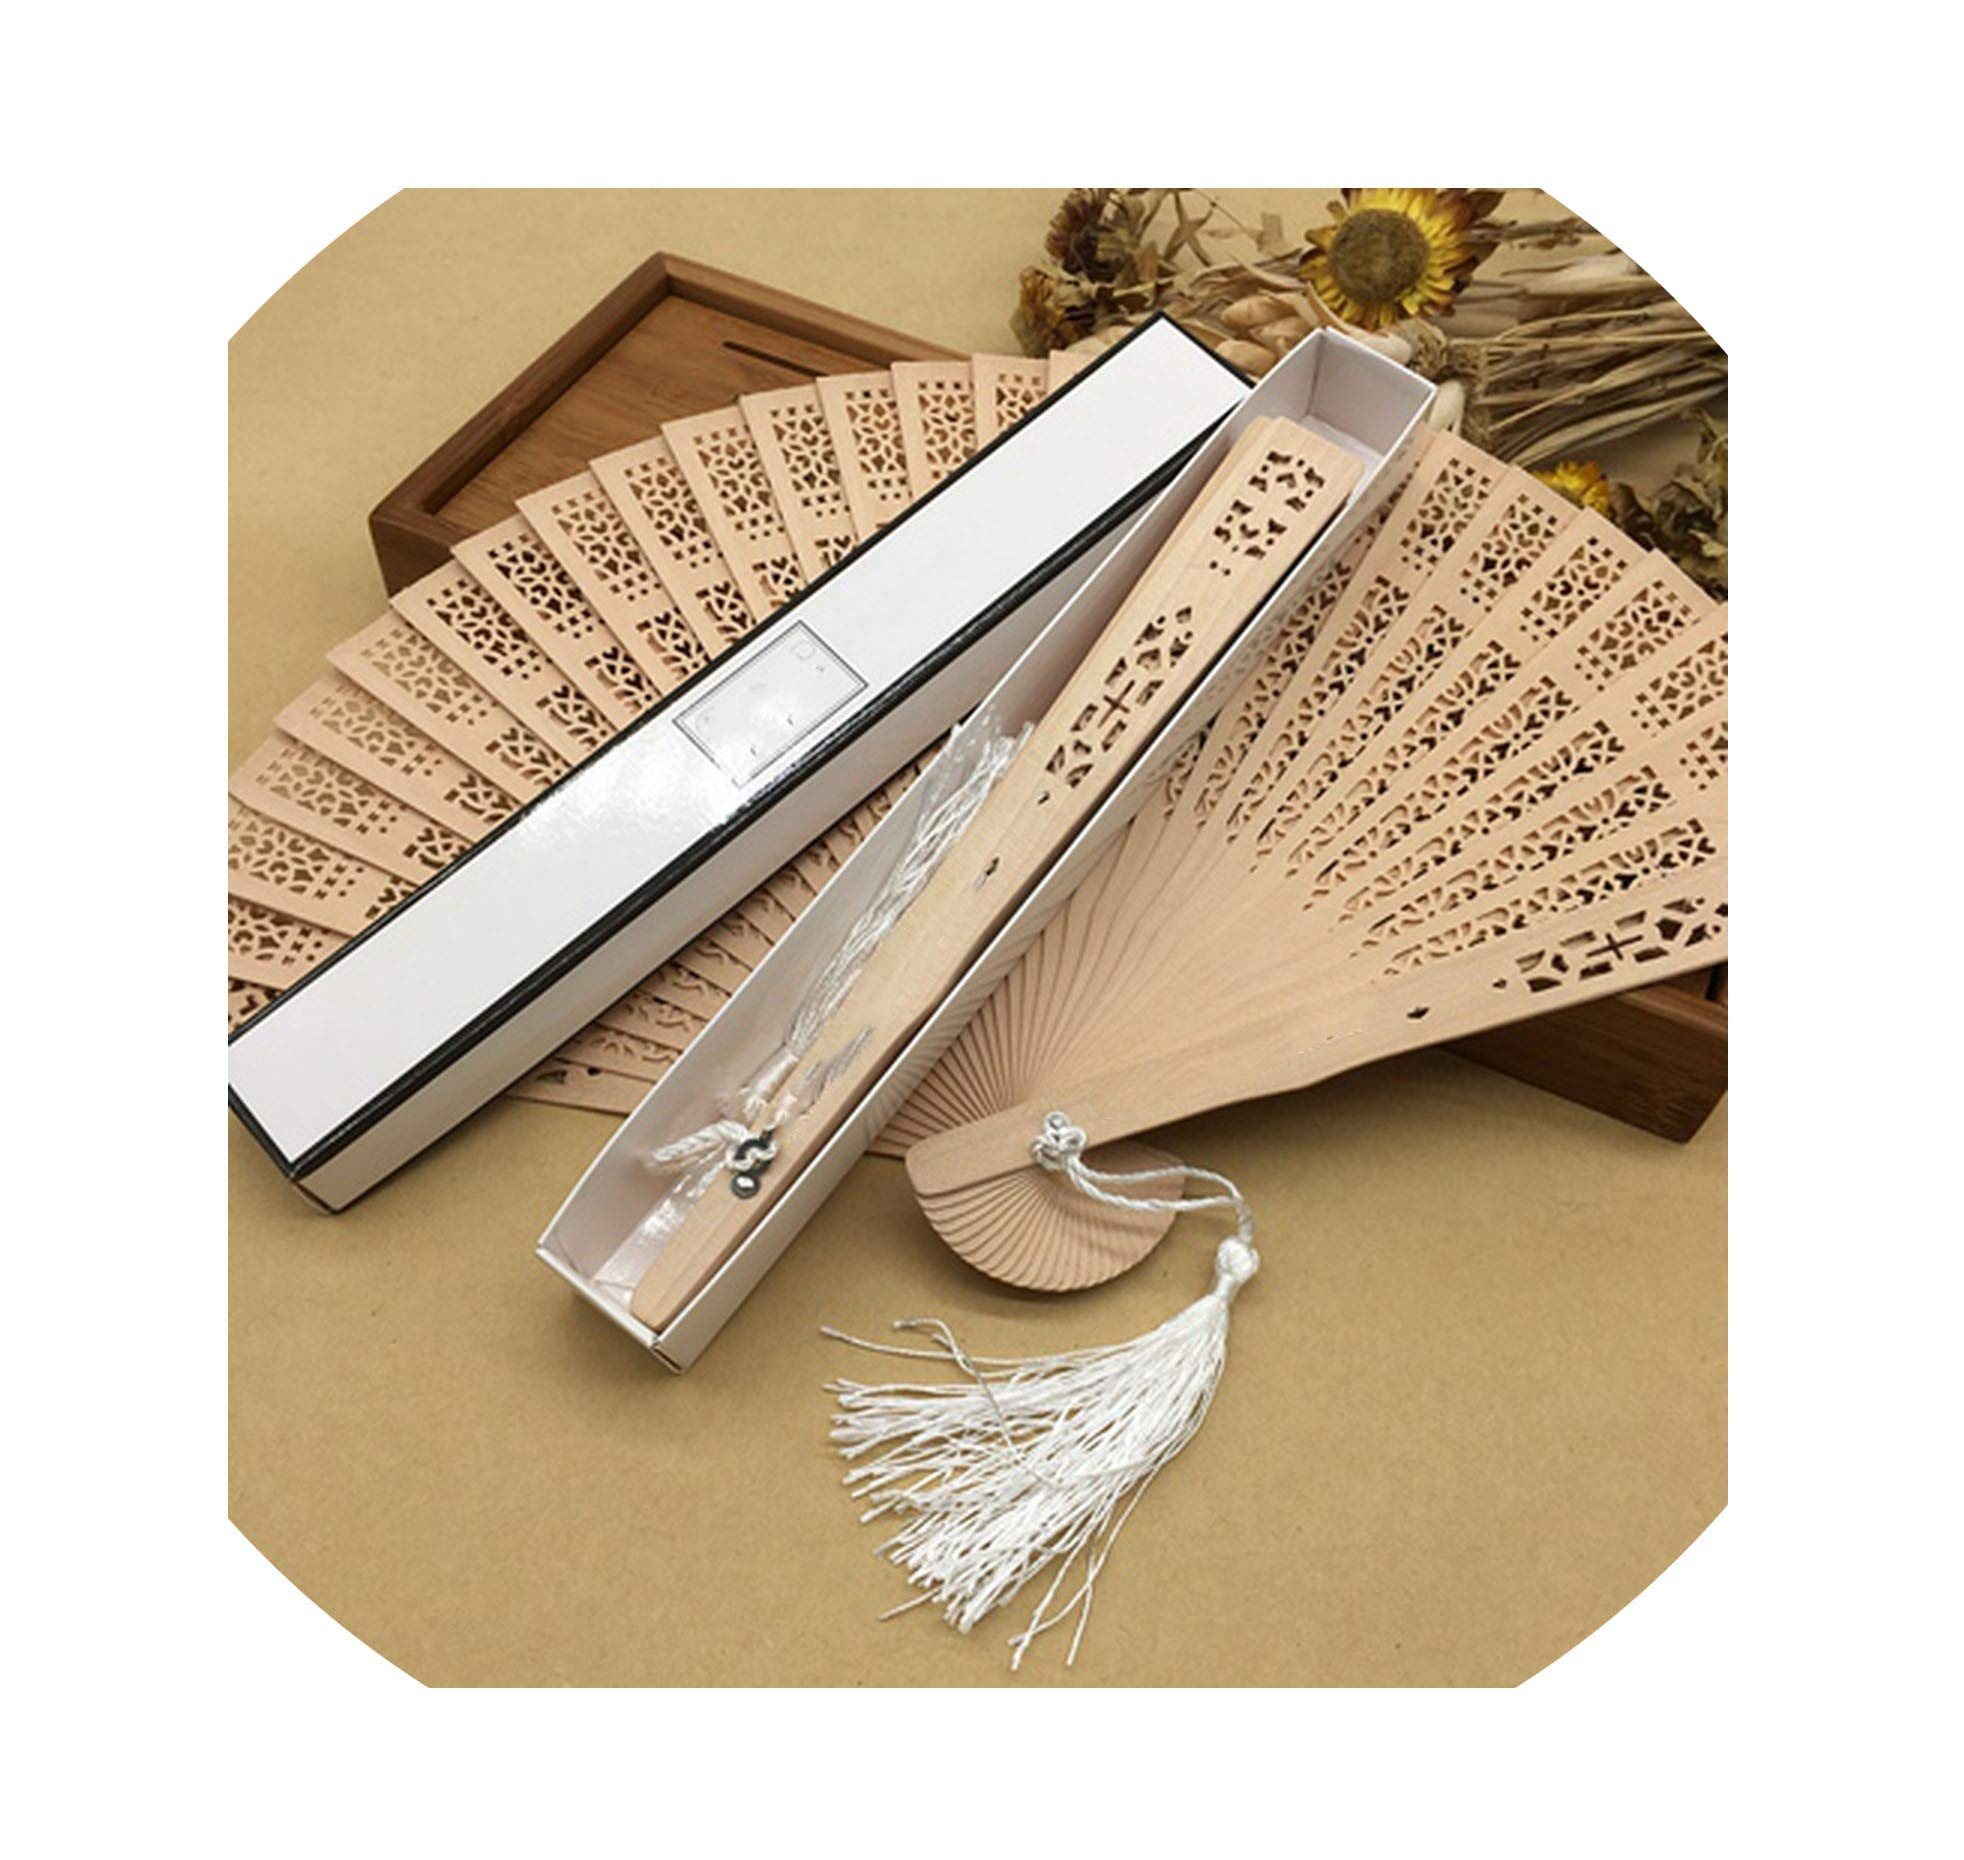 LIUUUU 10pcs/Lot Personalized Printing Text Wood Hollow Carved Chinese Hand Fan Organza Bag Wedding fors and Gifts,1 by LIUUUU